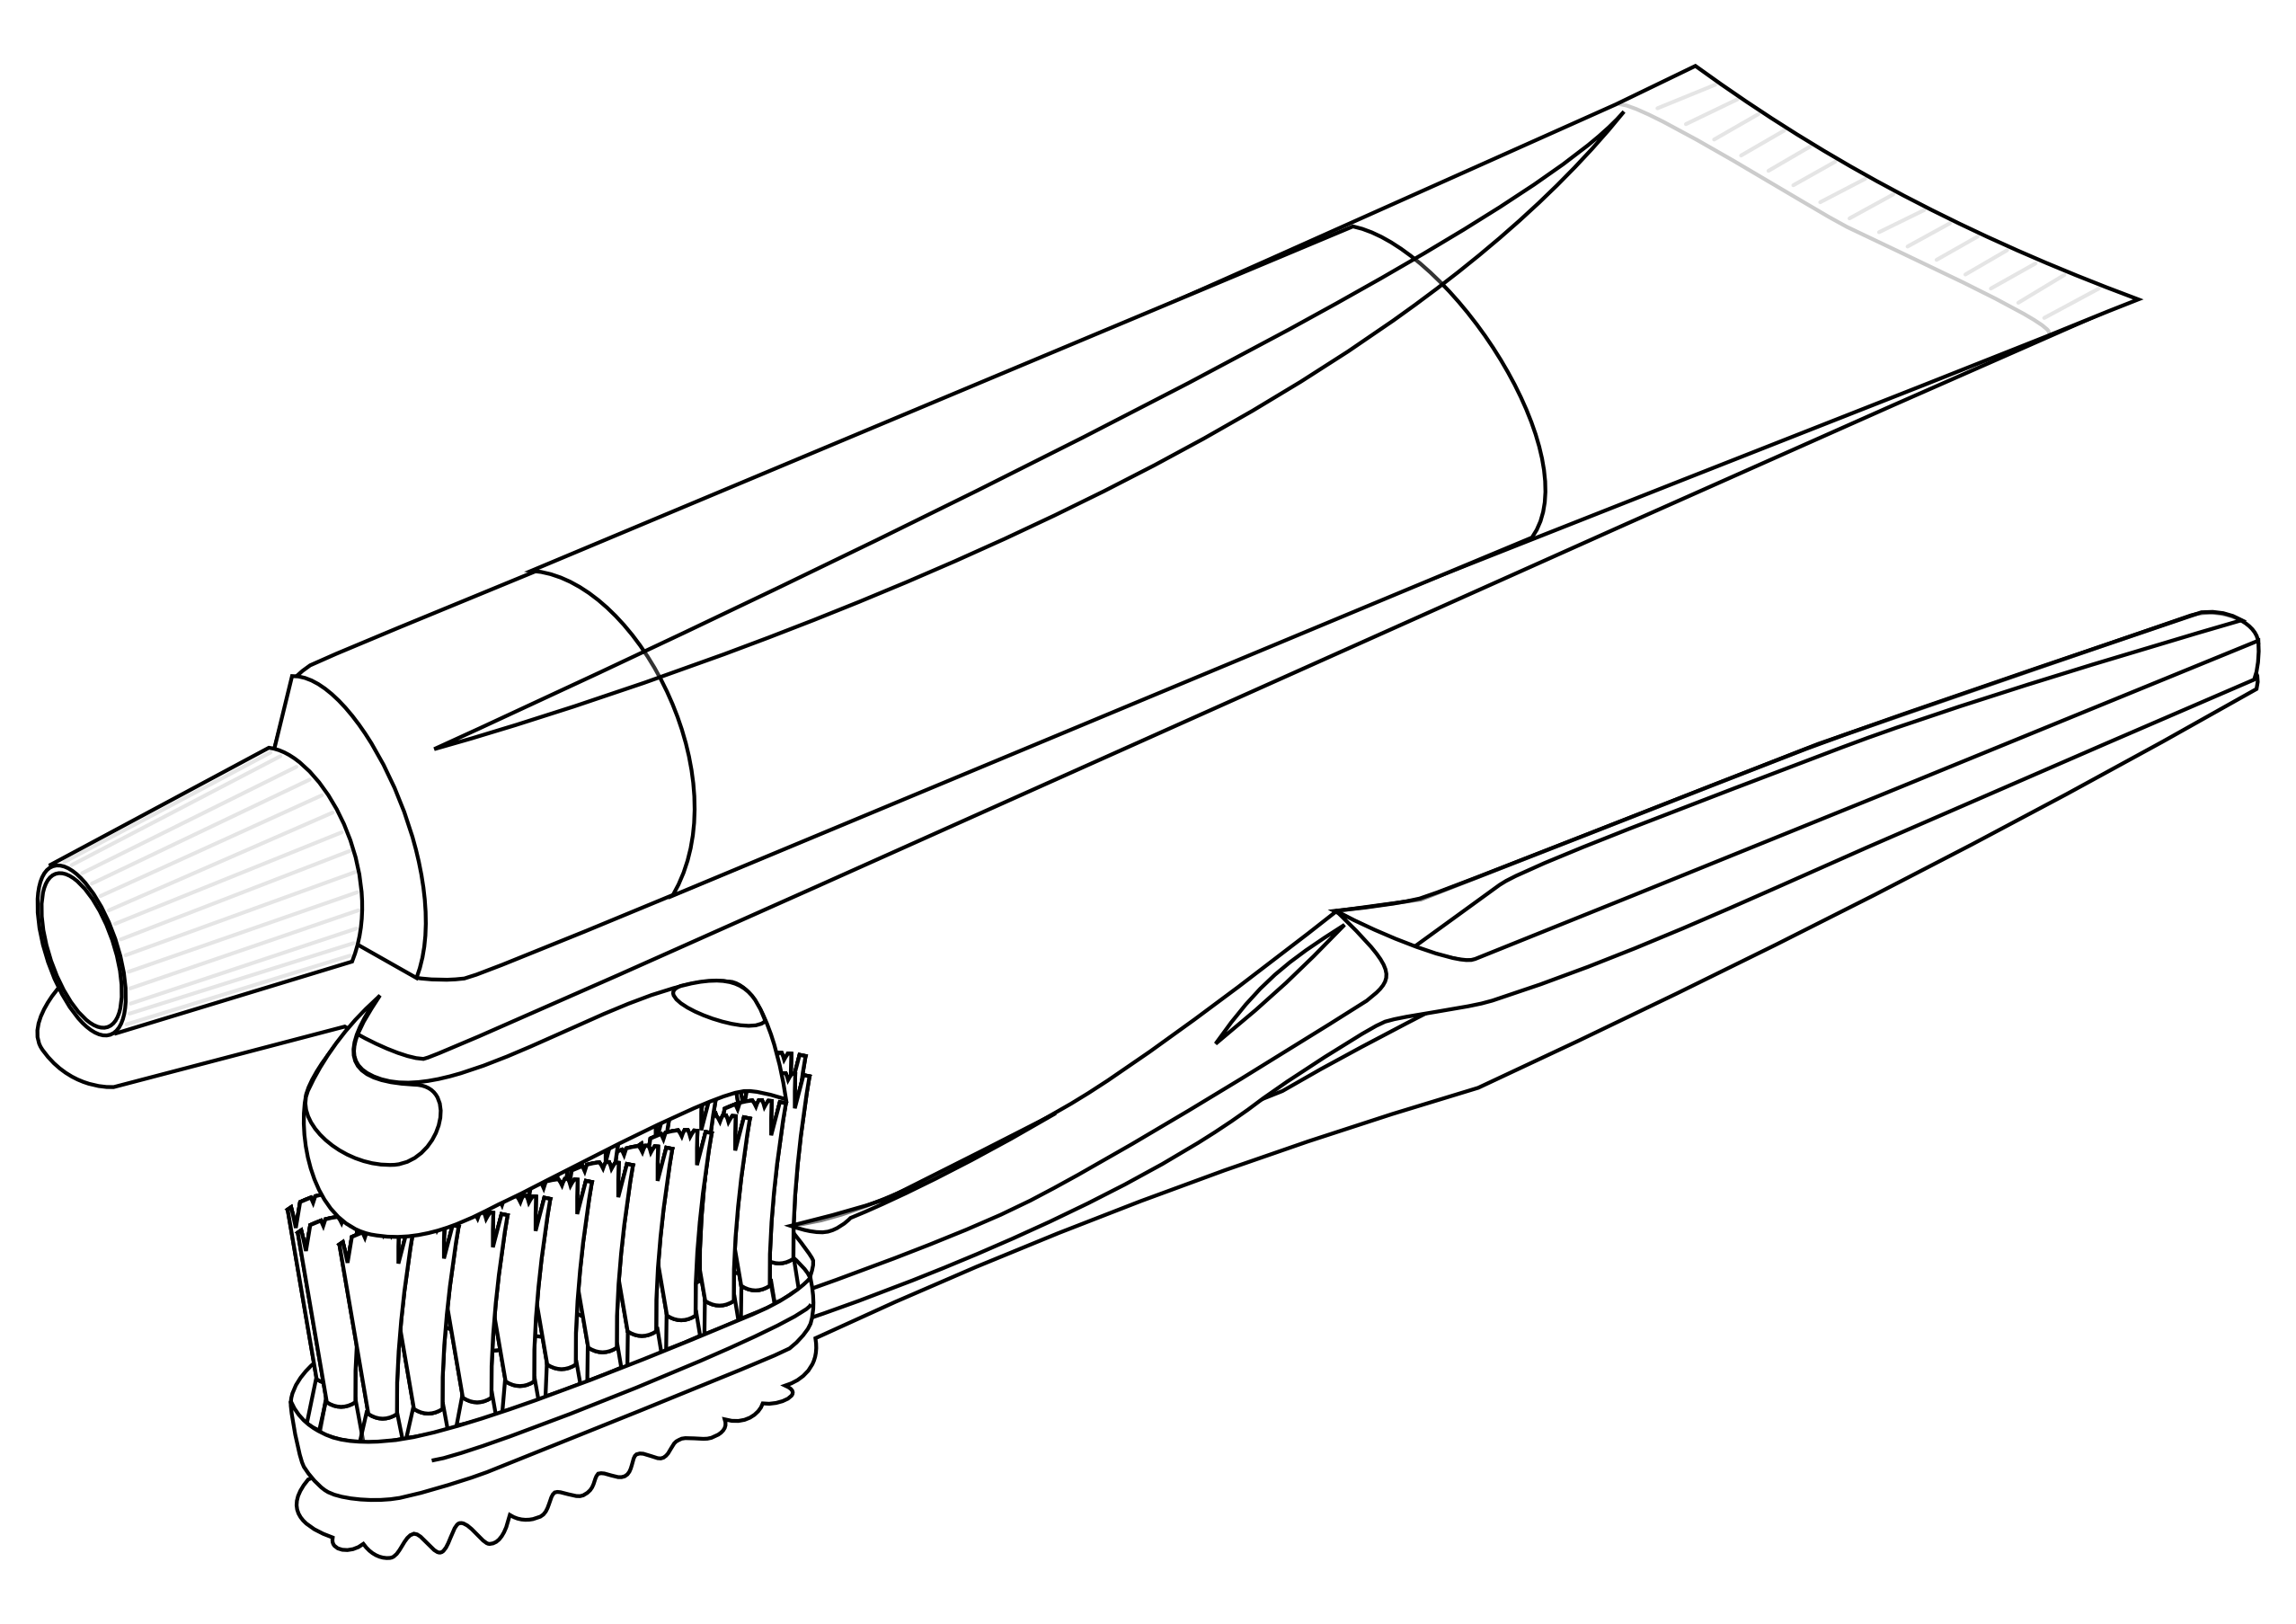 Toothbrush 3 Black White Line Art Scalable Vector Graphics